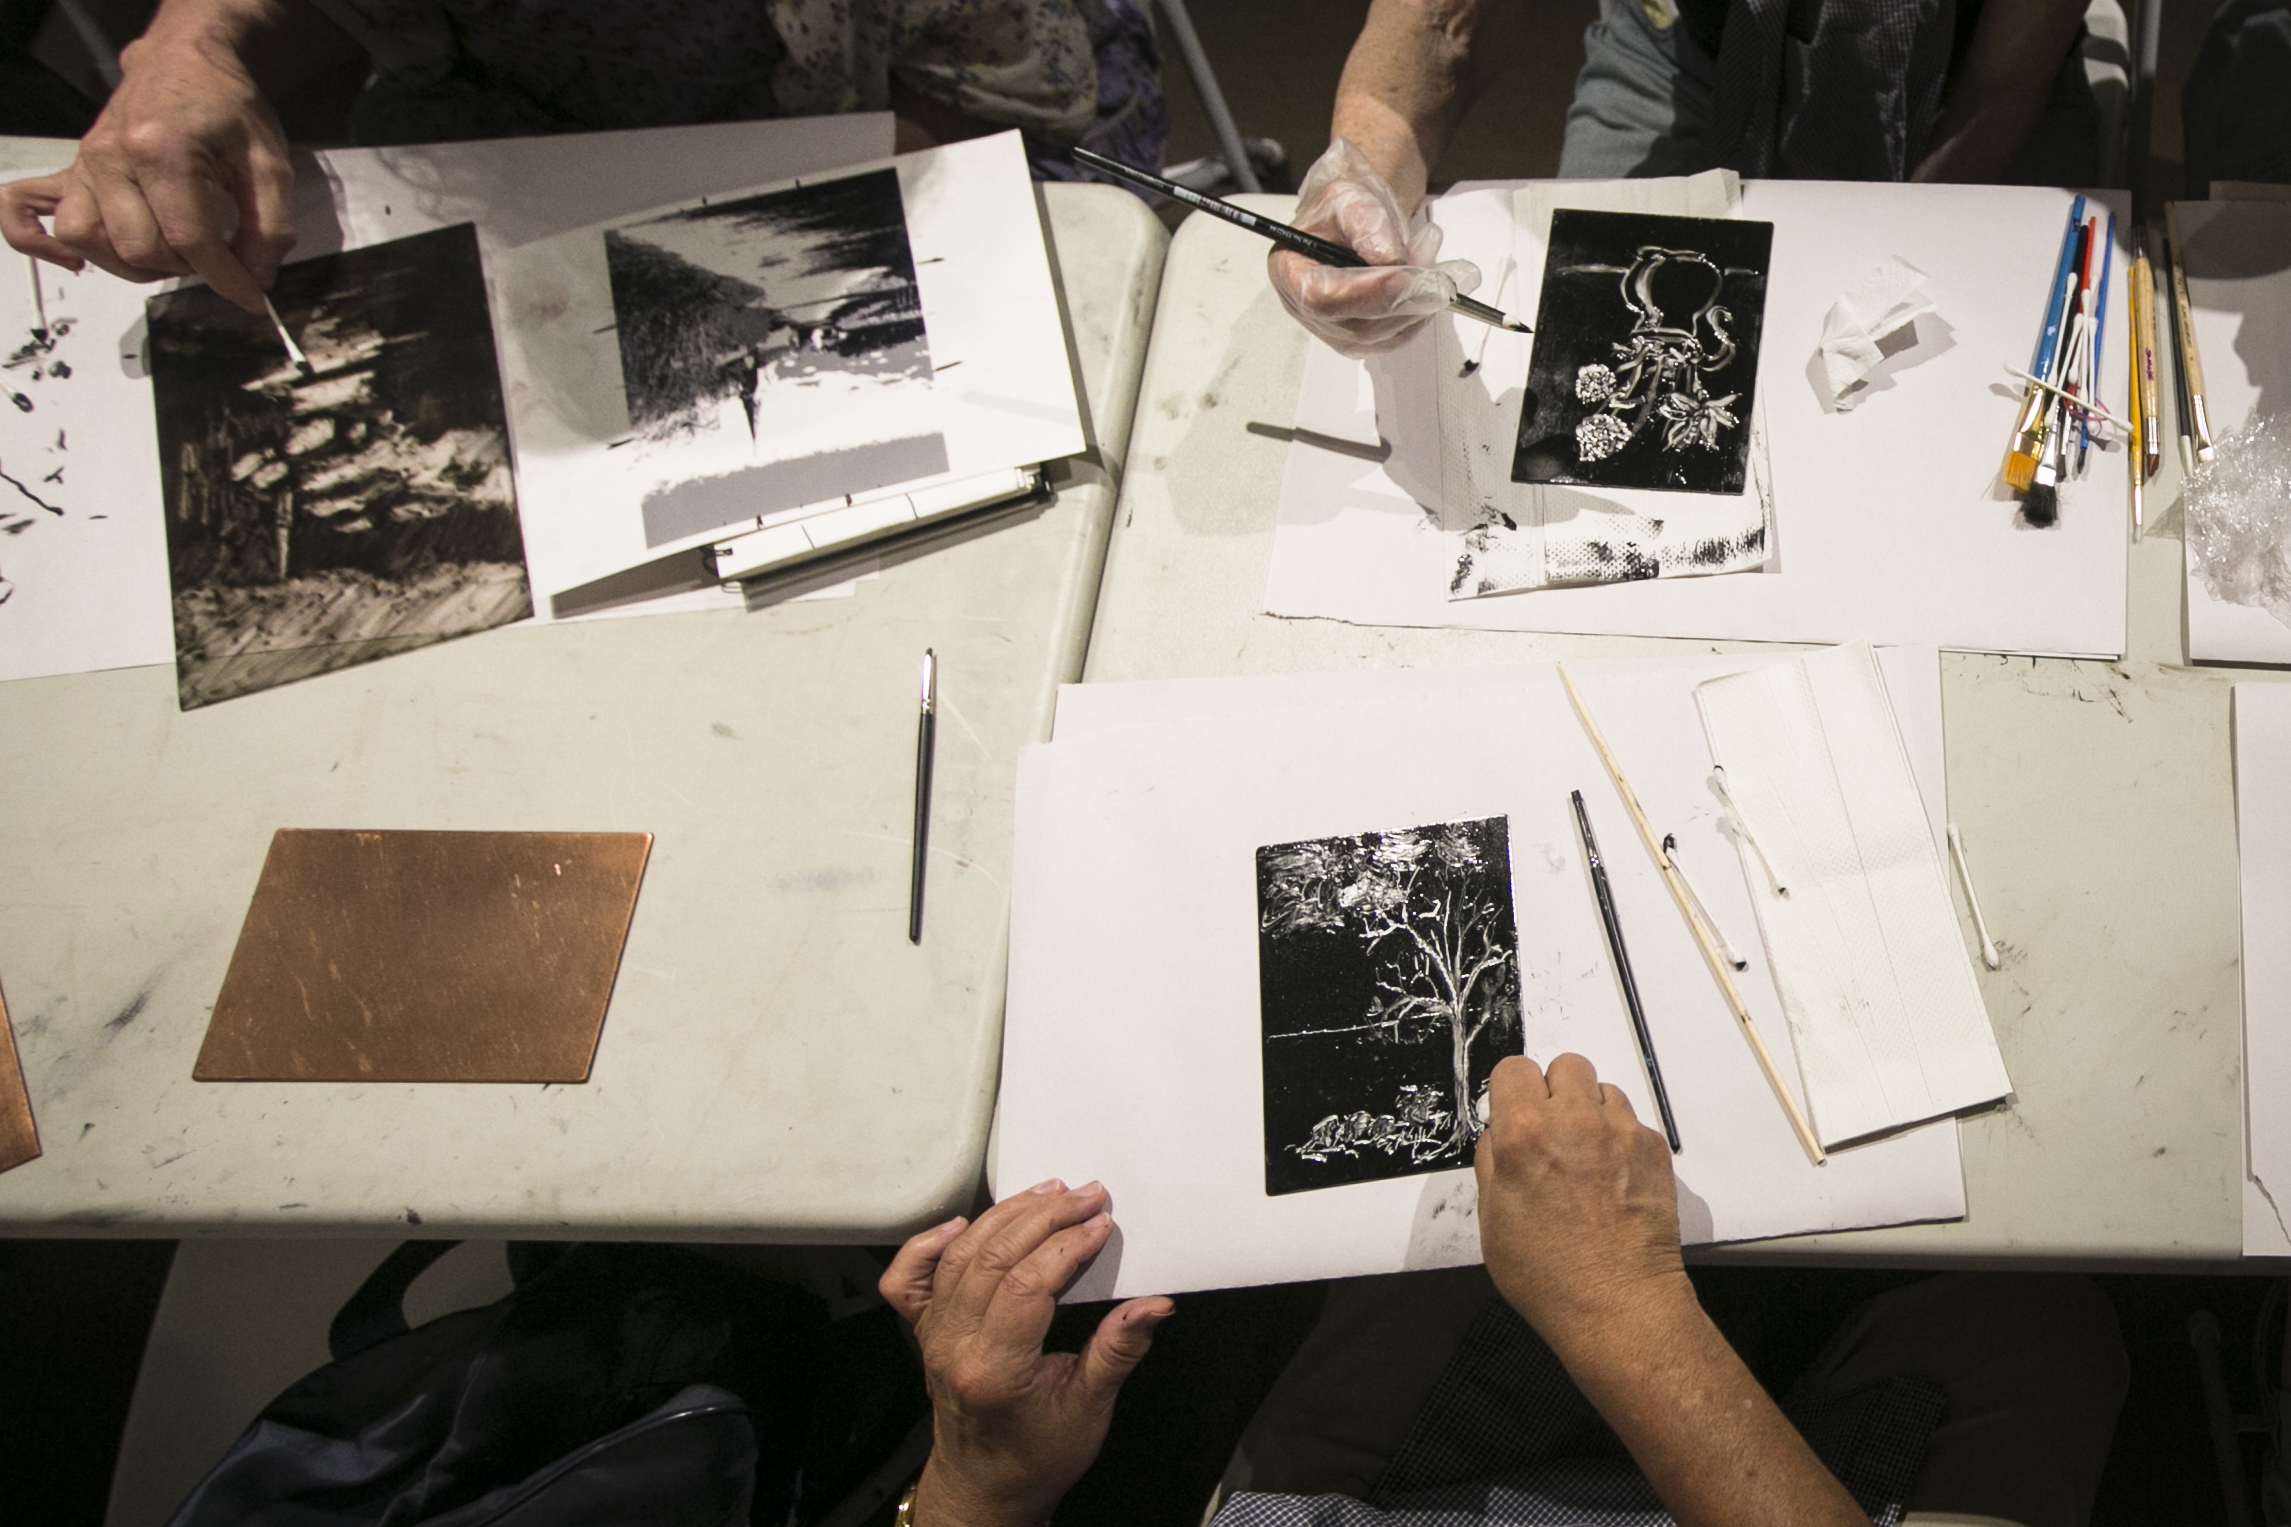 People create Monotype prints at the monthly monotype party of the Salmagundi Club in Greenwich Village, New York on July 12, 2016. (Samira Bouaou/Epoch Times)